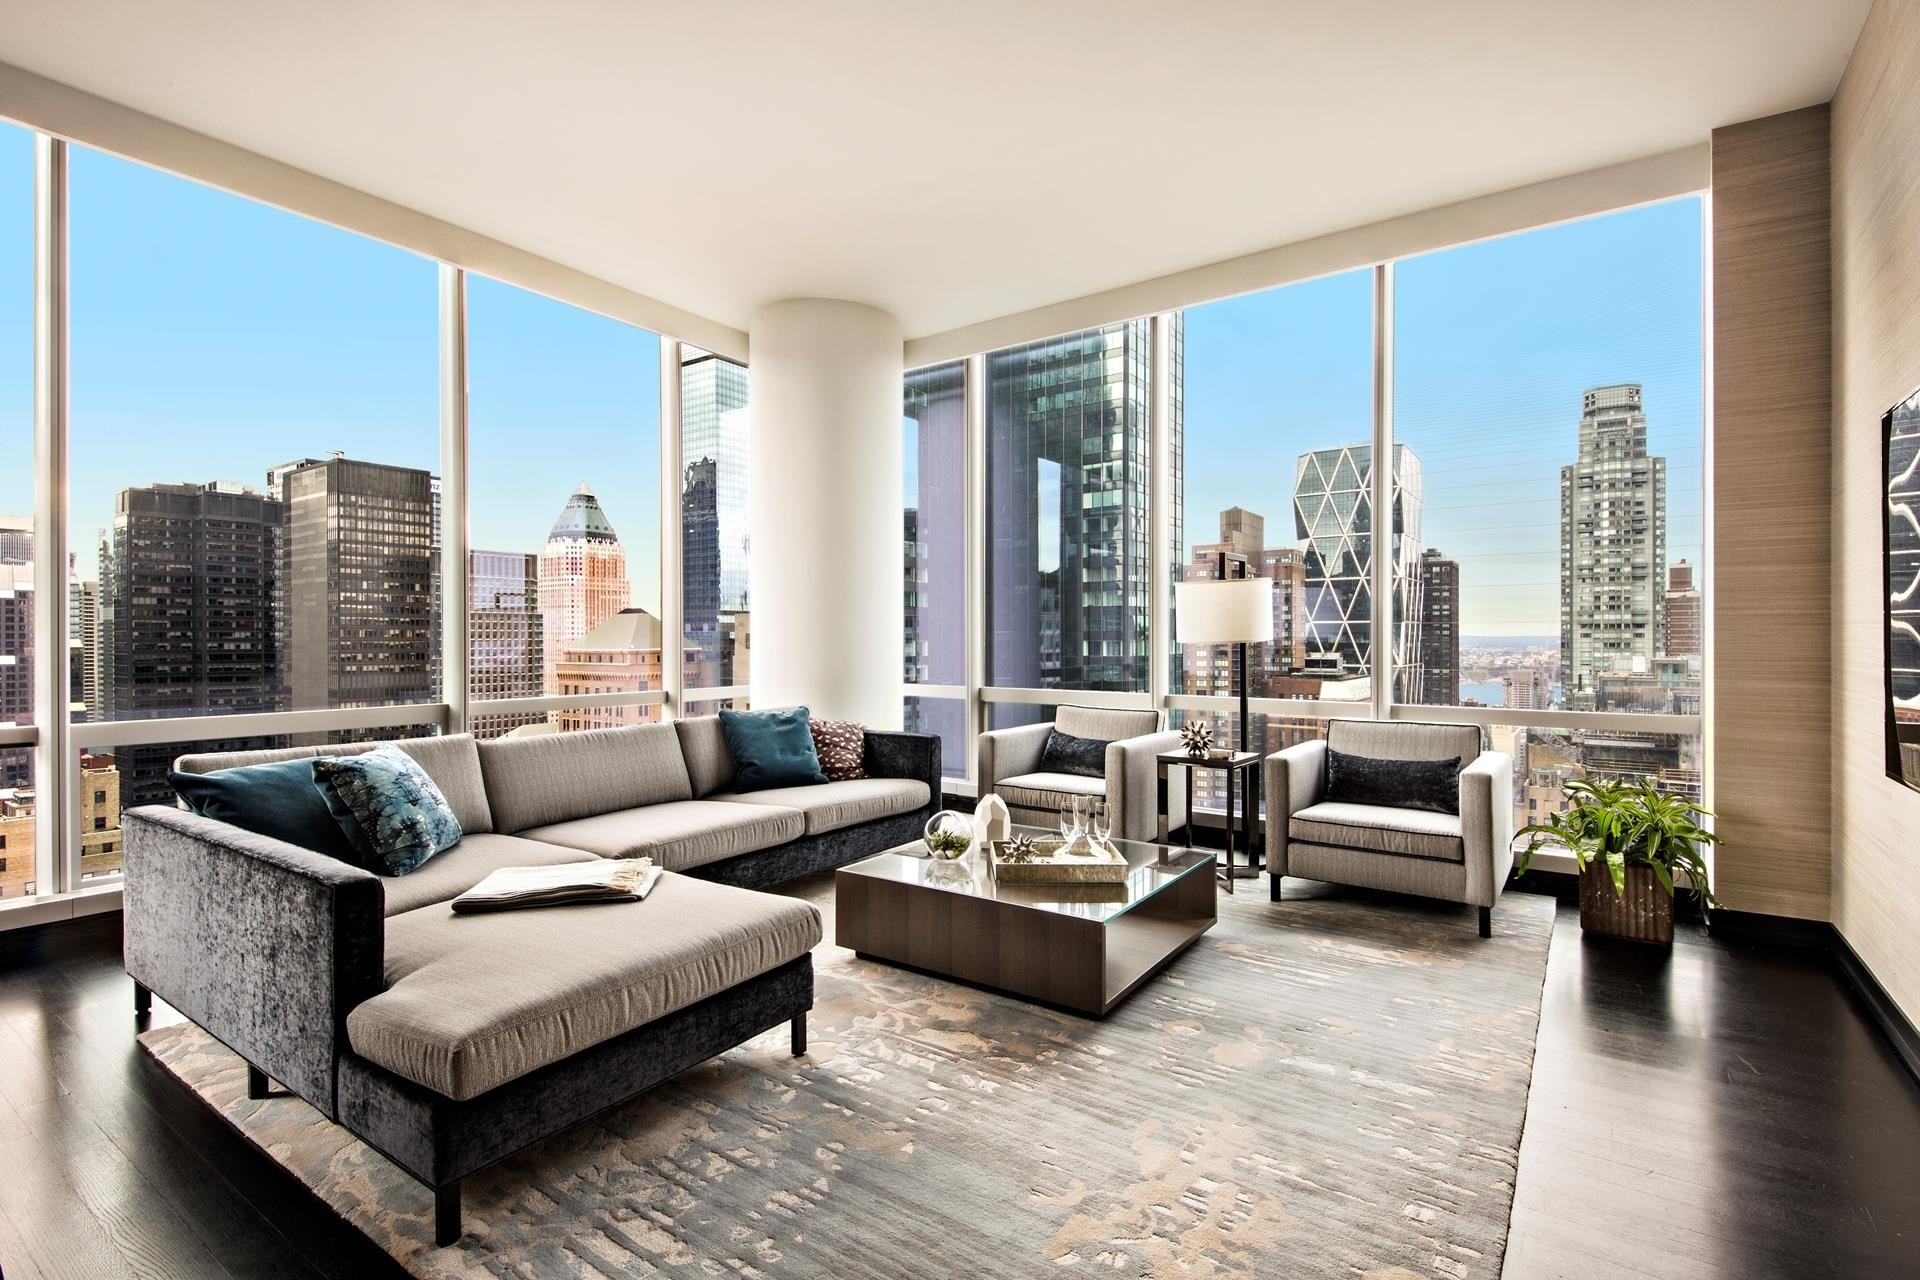 Property en 157 East 57th St, 38C Midtown East, New York, NY 10022